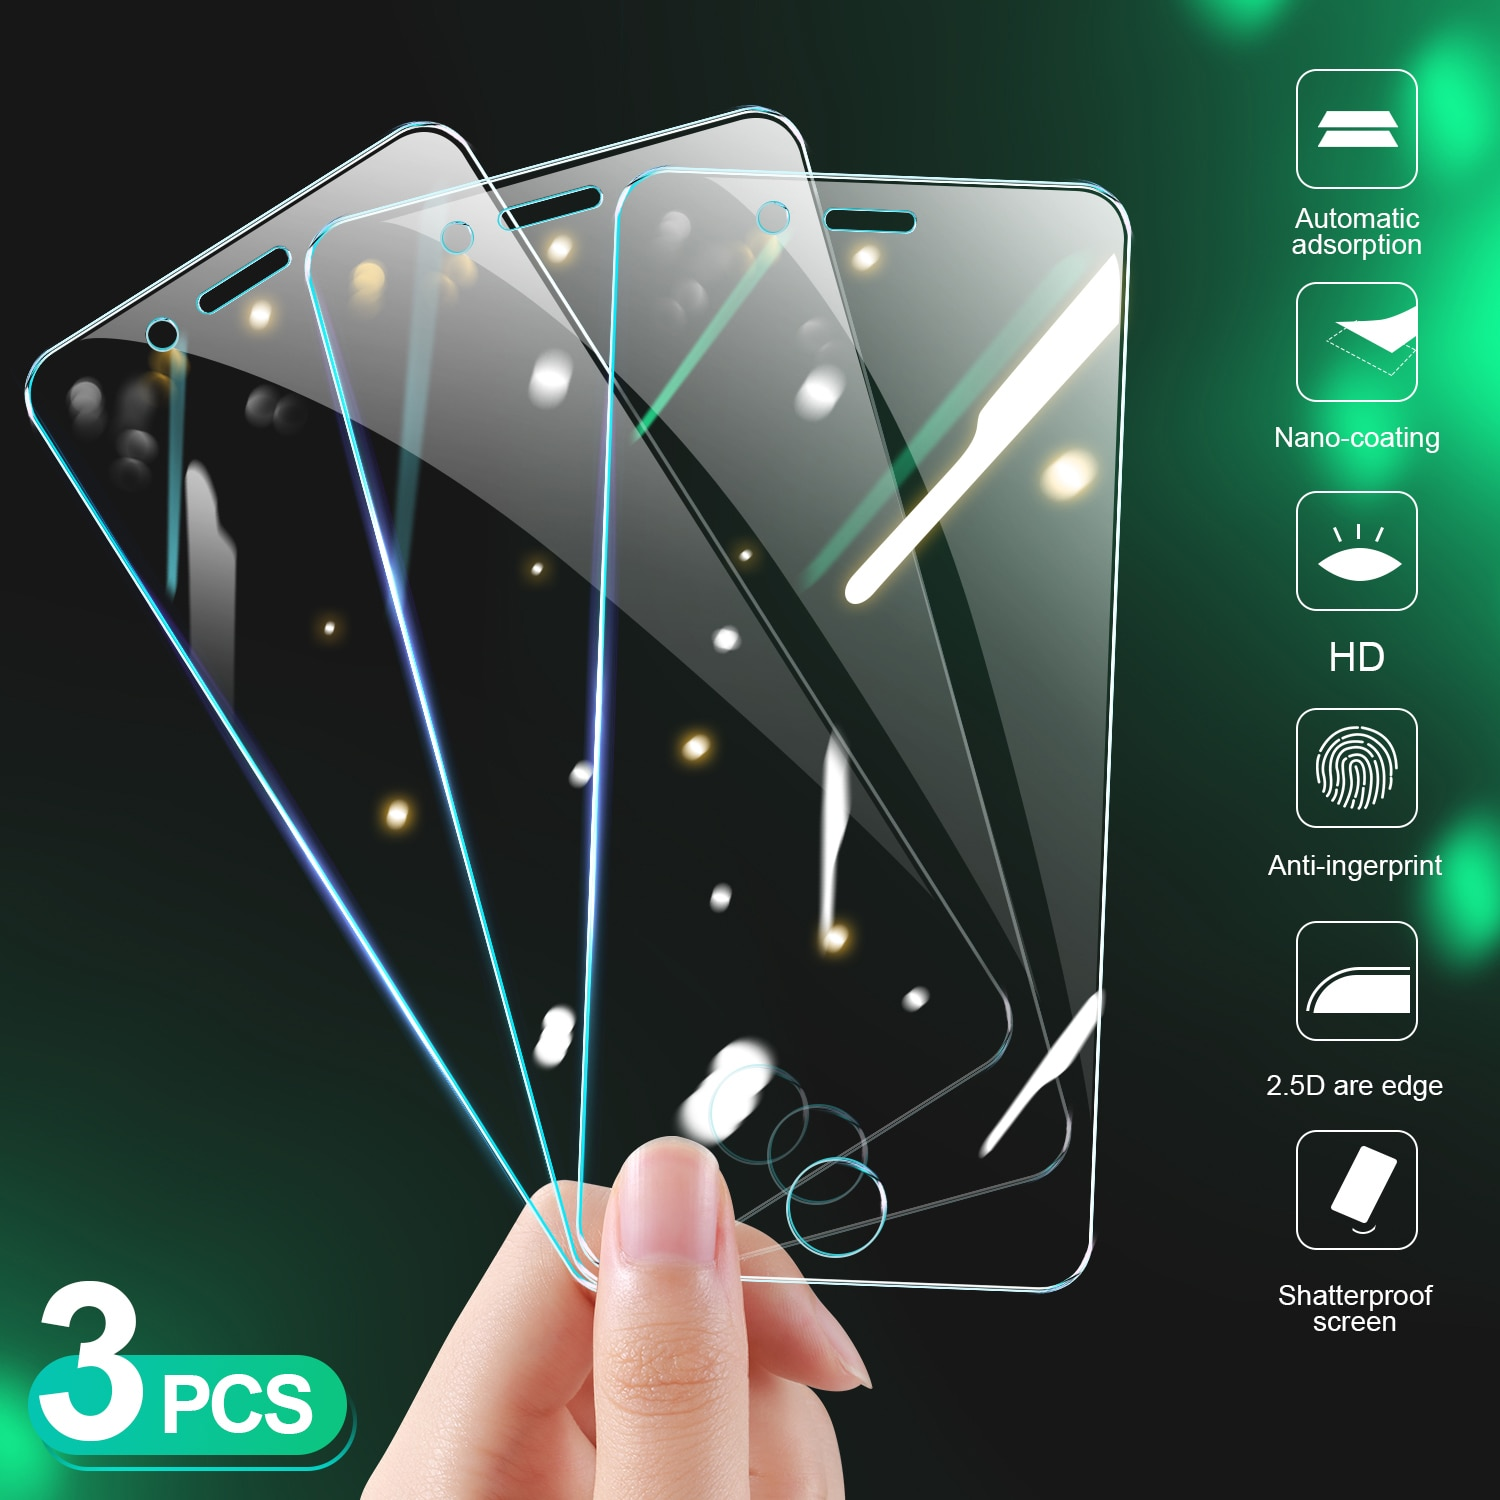 3pcs-full-protective-glass-for-iphone-se-2020-5s-6-6s-7-8-plus-tempered-screen-protector-on-iphone-11-pro-xs-max-x-xr-glass-film